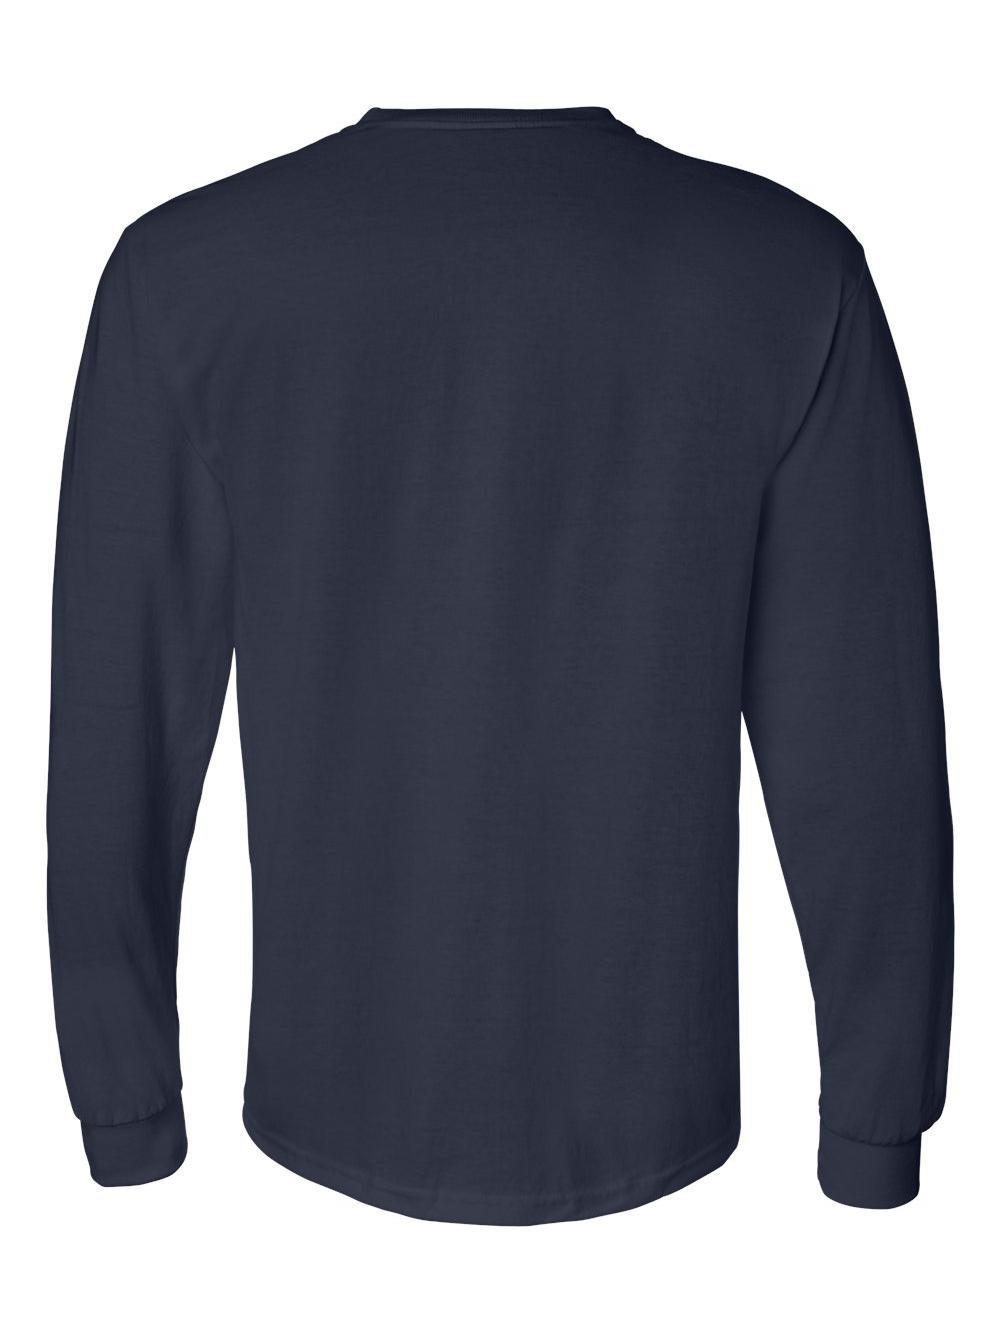 Gildan-DryBlend-50-50-Long-Sleeve-T-Shirt-8400 thumbnail 25